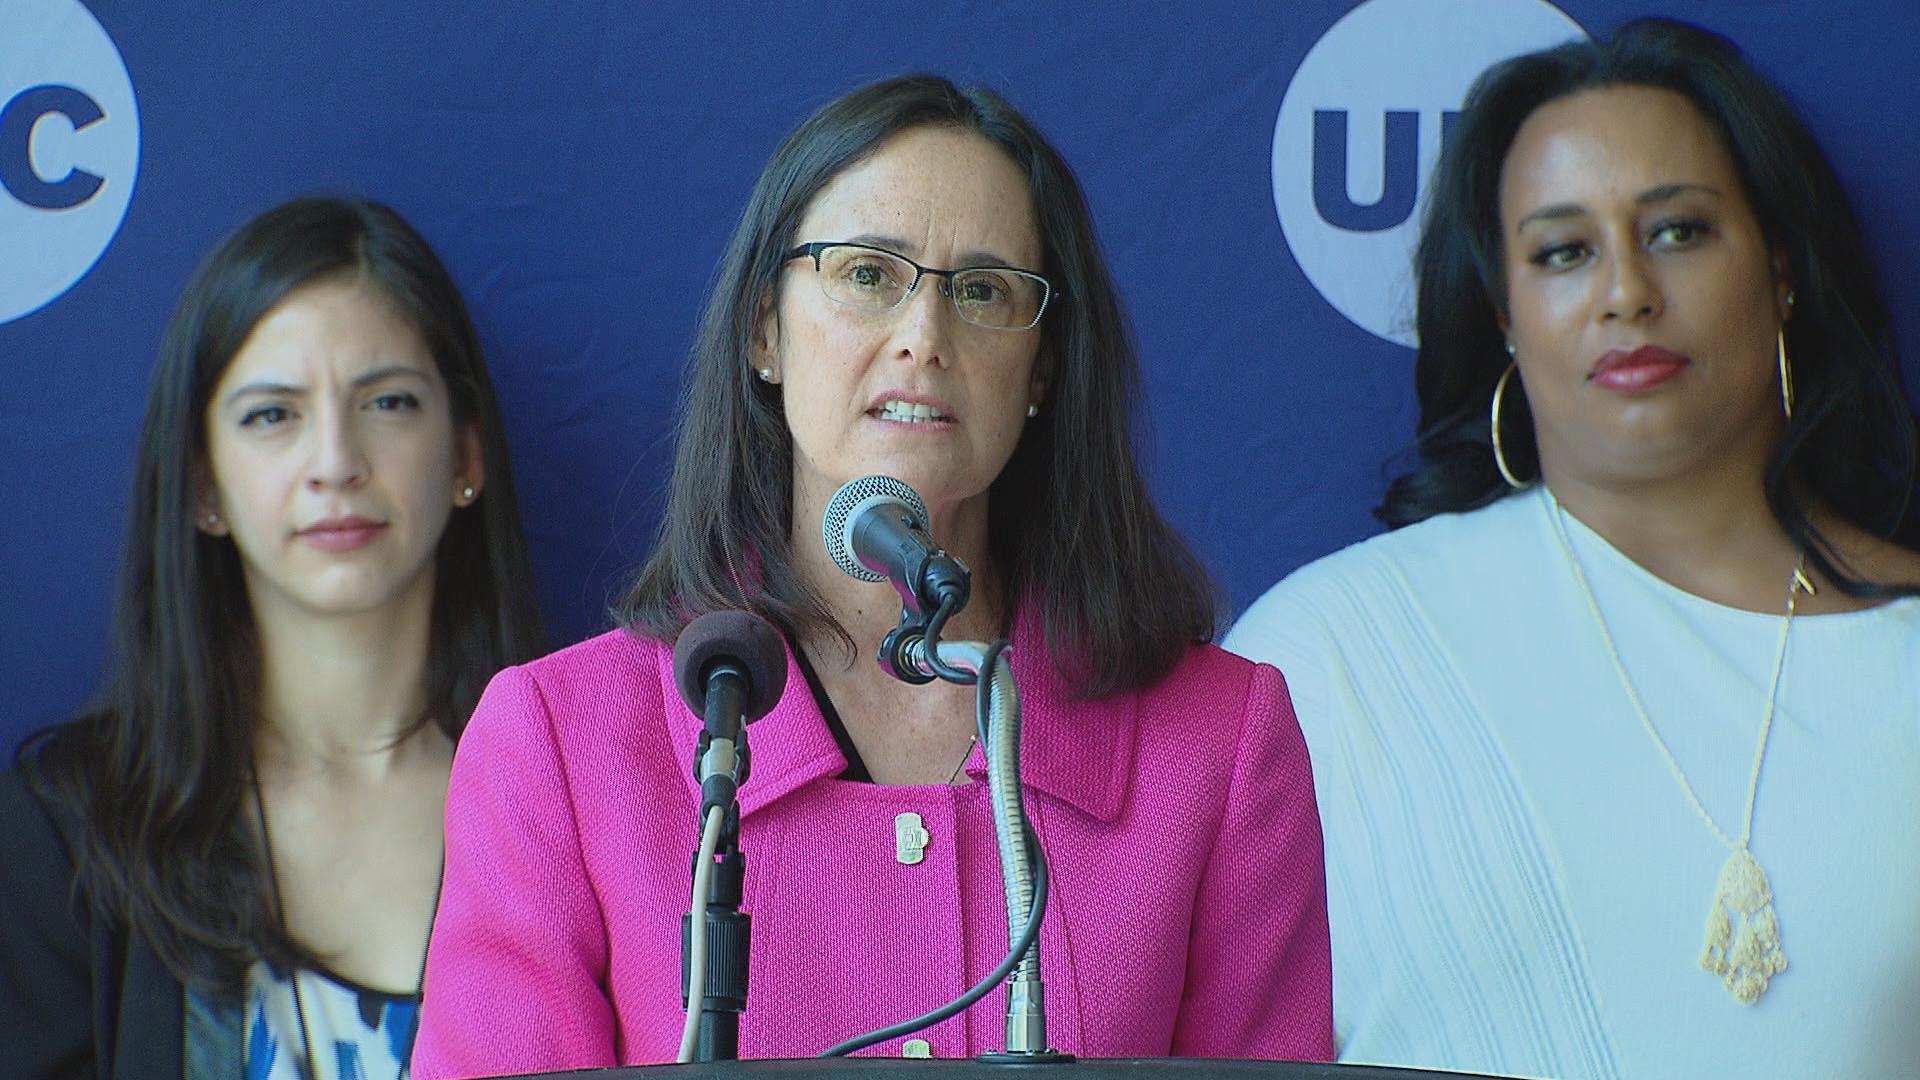 Illinois Attorney General Lisa Madigan speaks about campus sexual assault on Aug. 23, 2016. (Chicago Tonight)